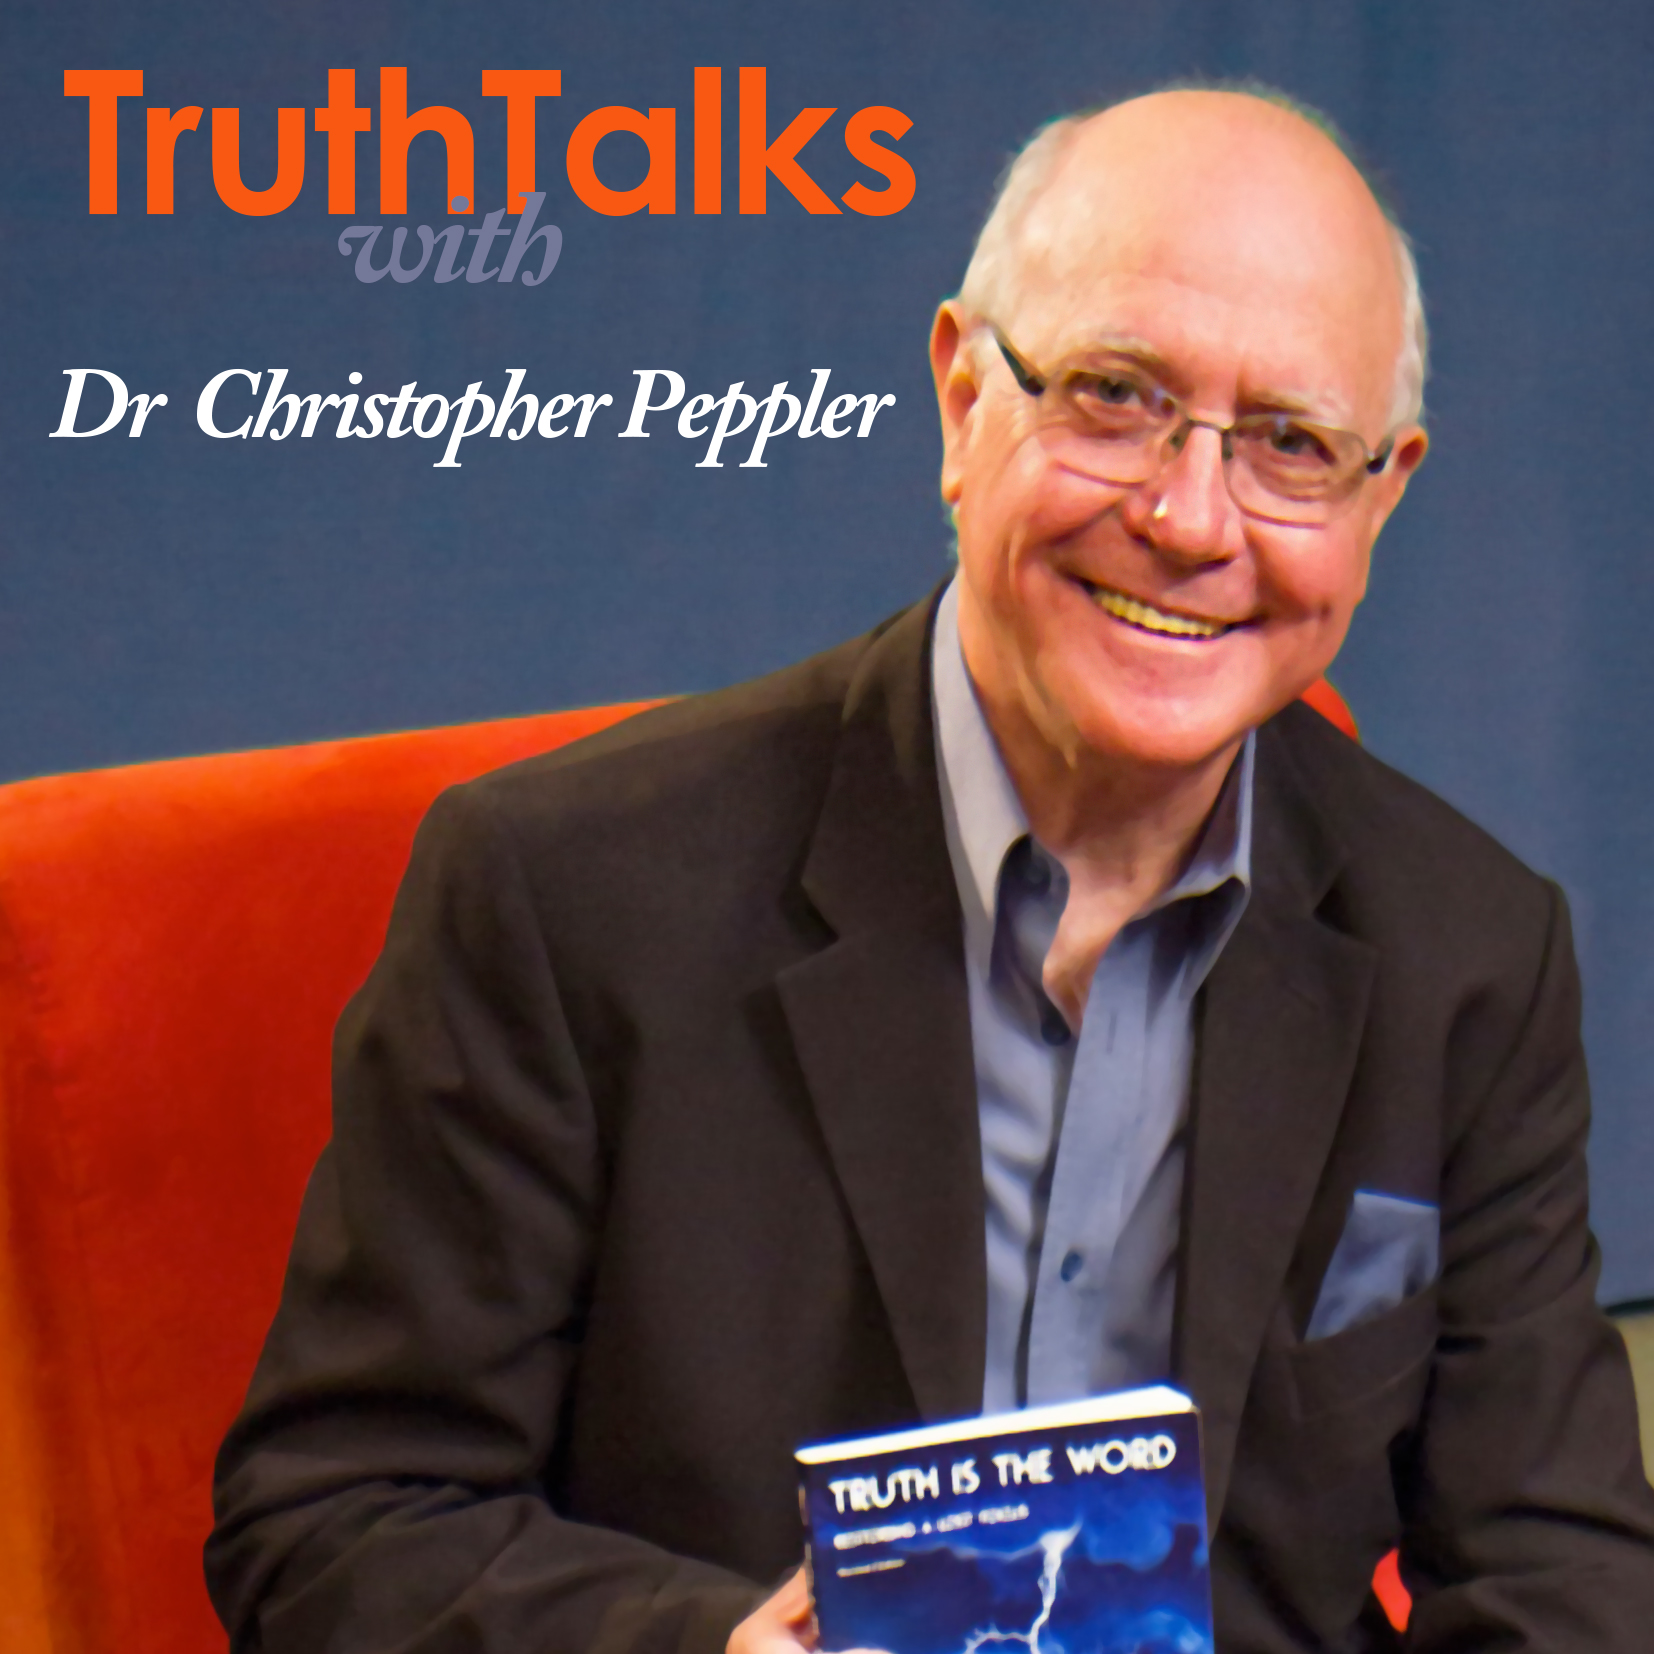 TruthTalks – Truth Is The Word